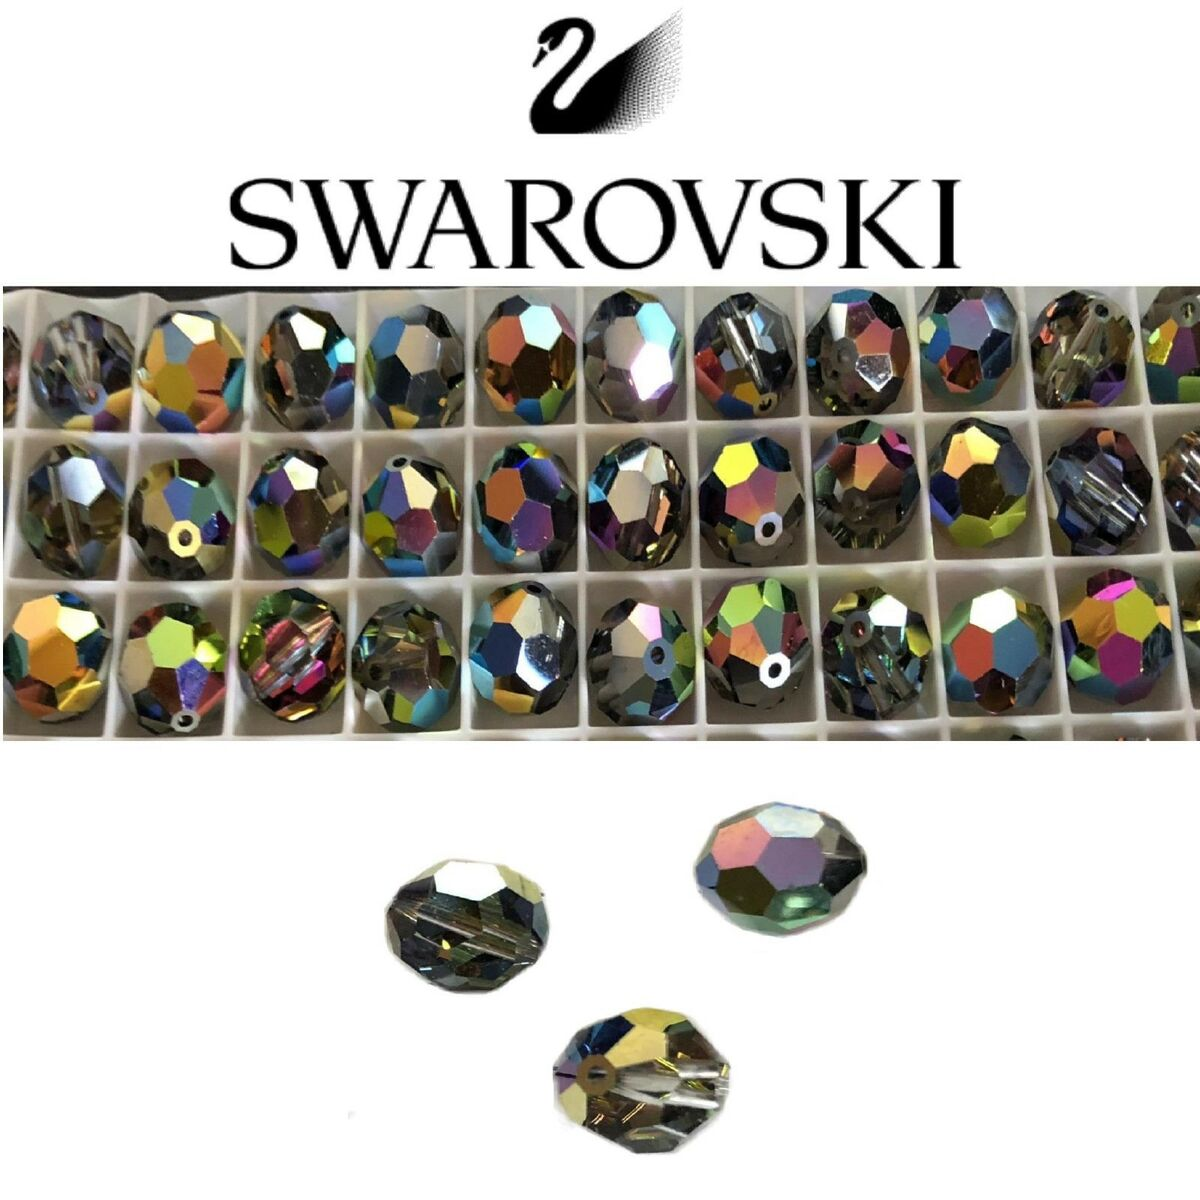 Lotto perline cristallo swarovski sfera vitral medium sfaccettata 6 8 10mm 